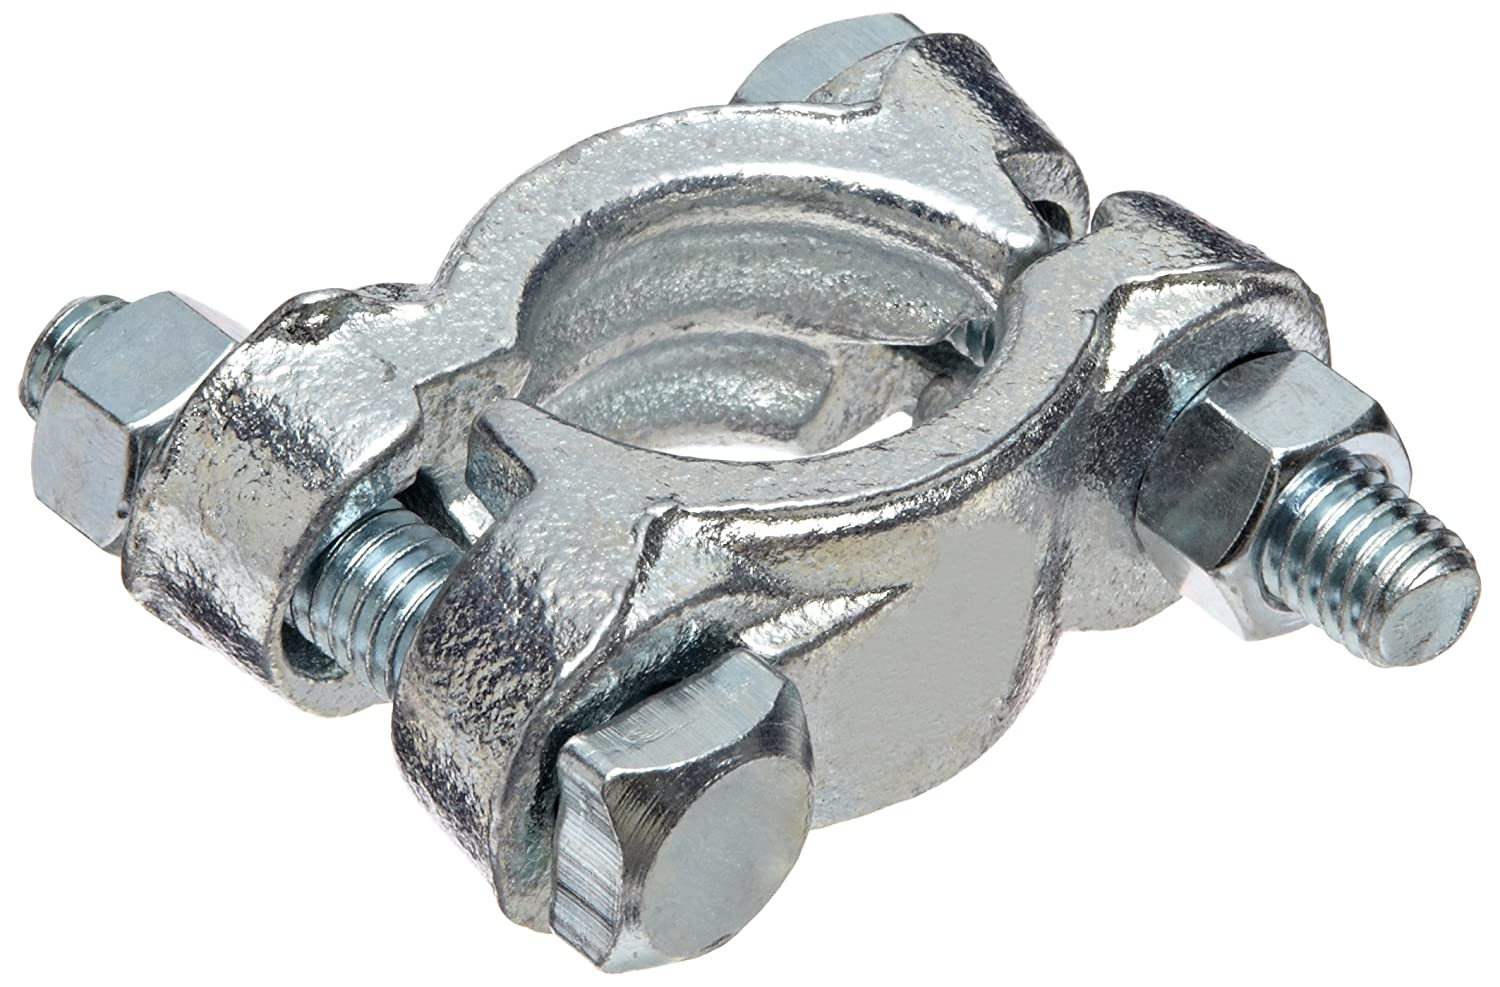 1-12//64-1-24//64 Hose OD Dixon J49 Plated Iron Double Bolt Clamp without Saddle